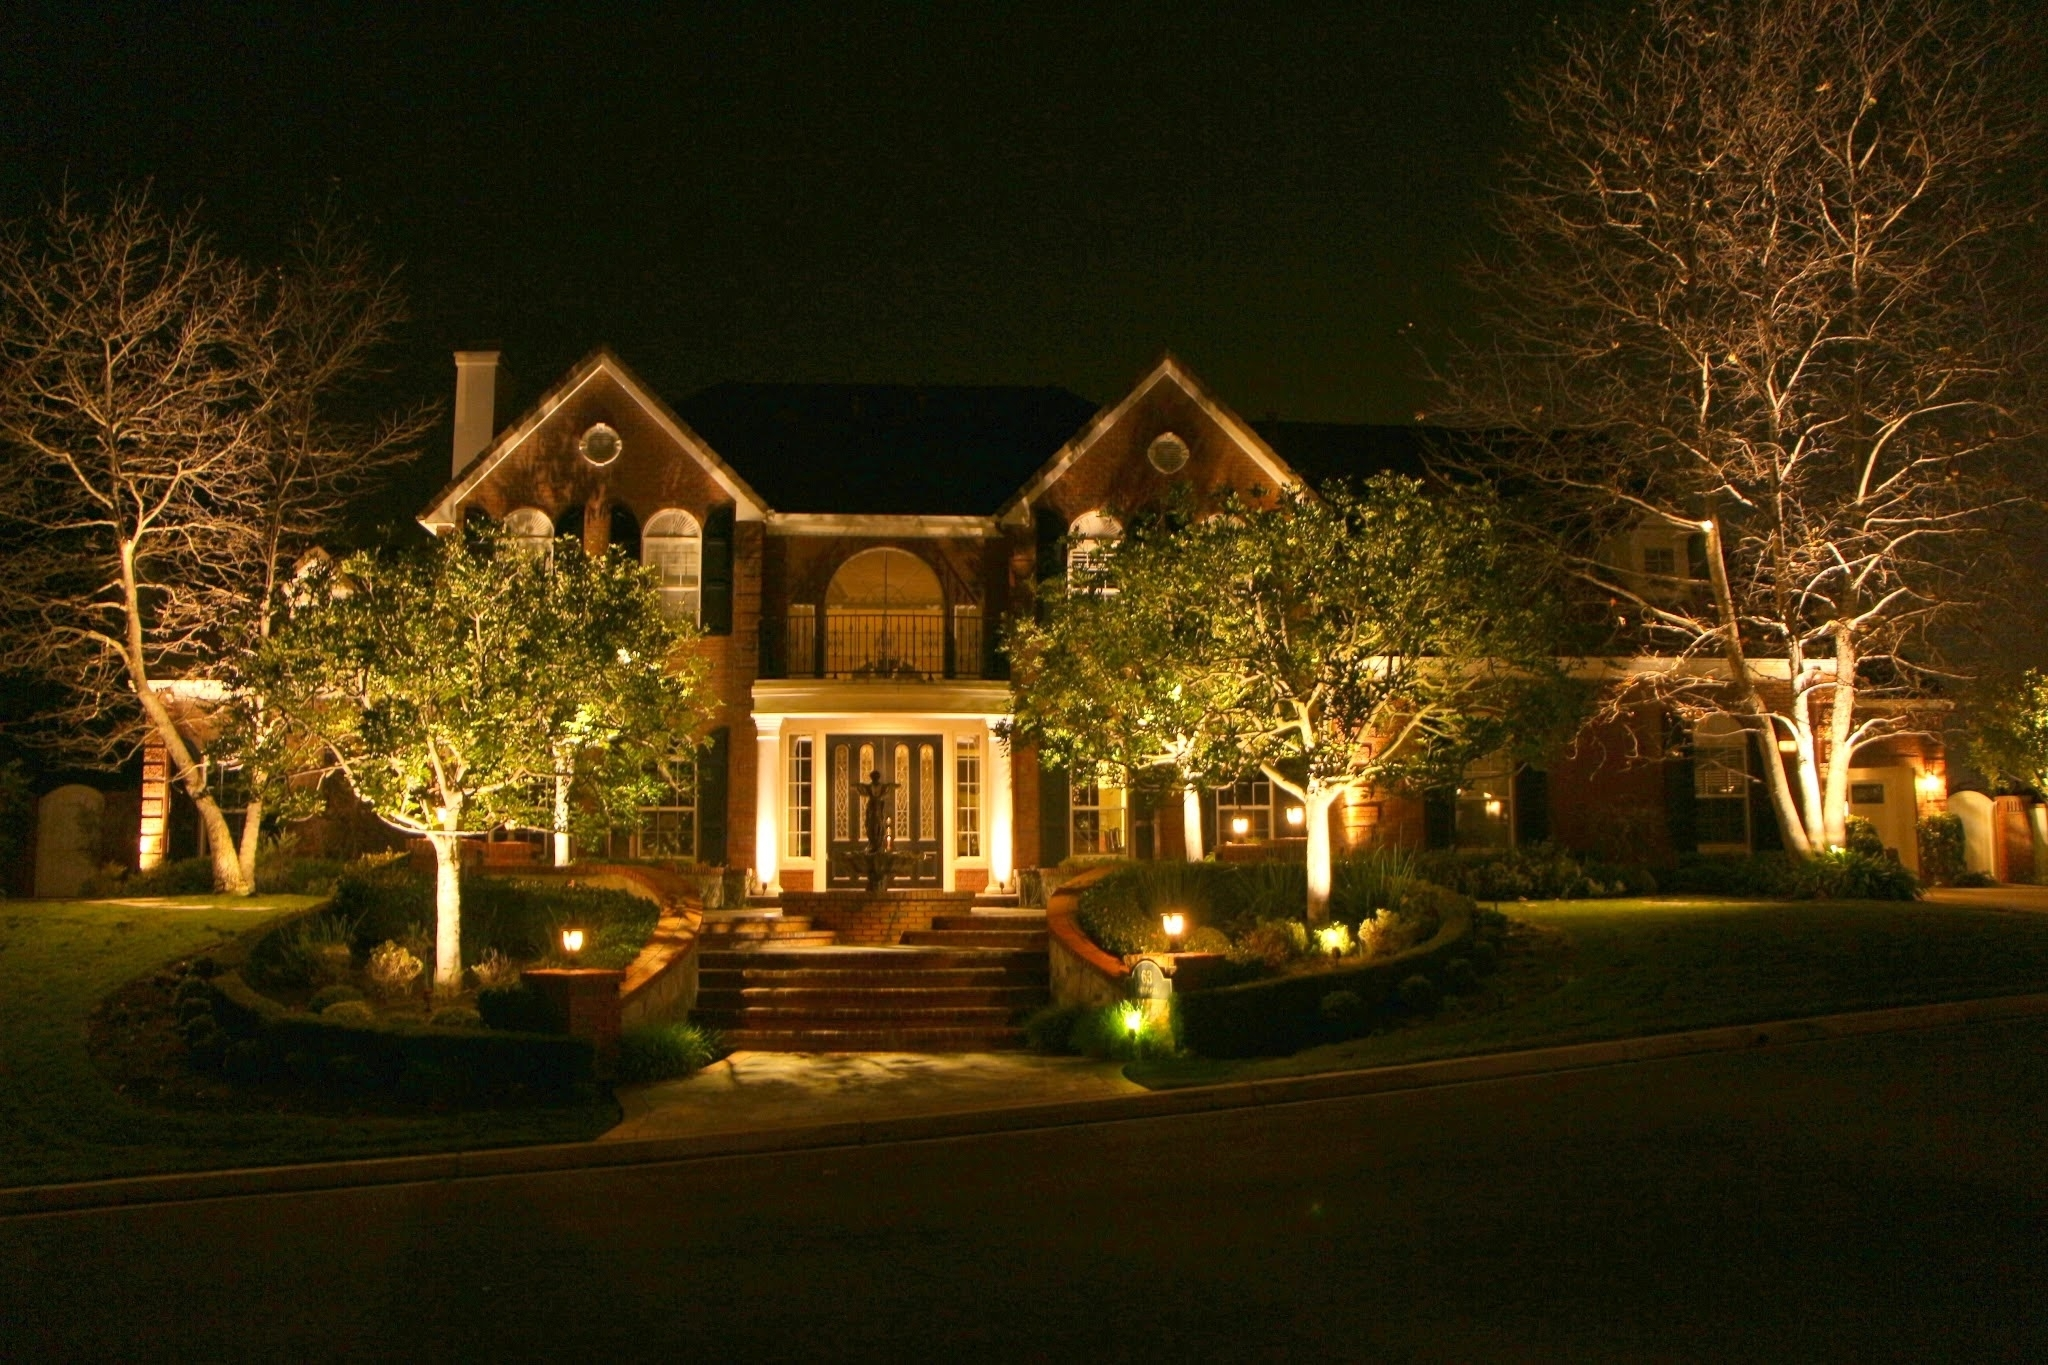 Best Outdoor Lights For House | Credainatcon for Outdoor Lanterns For House (Image 3 of 20)